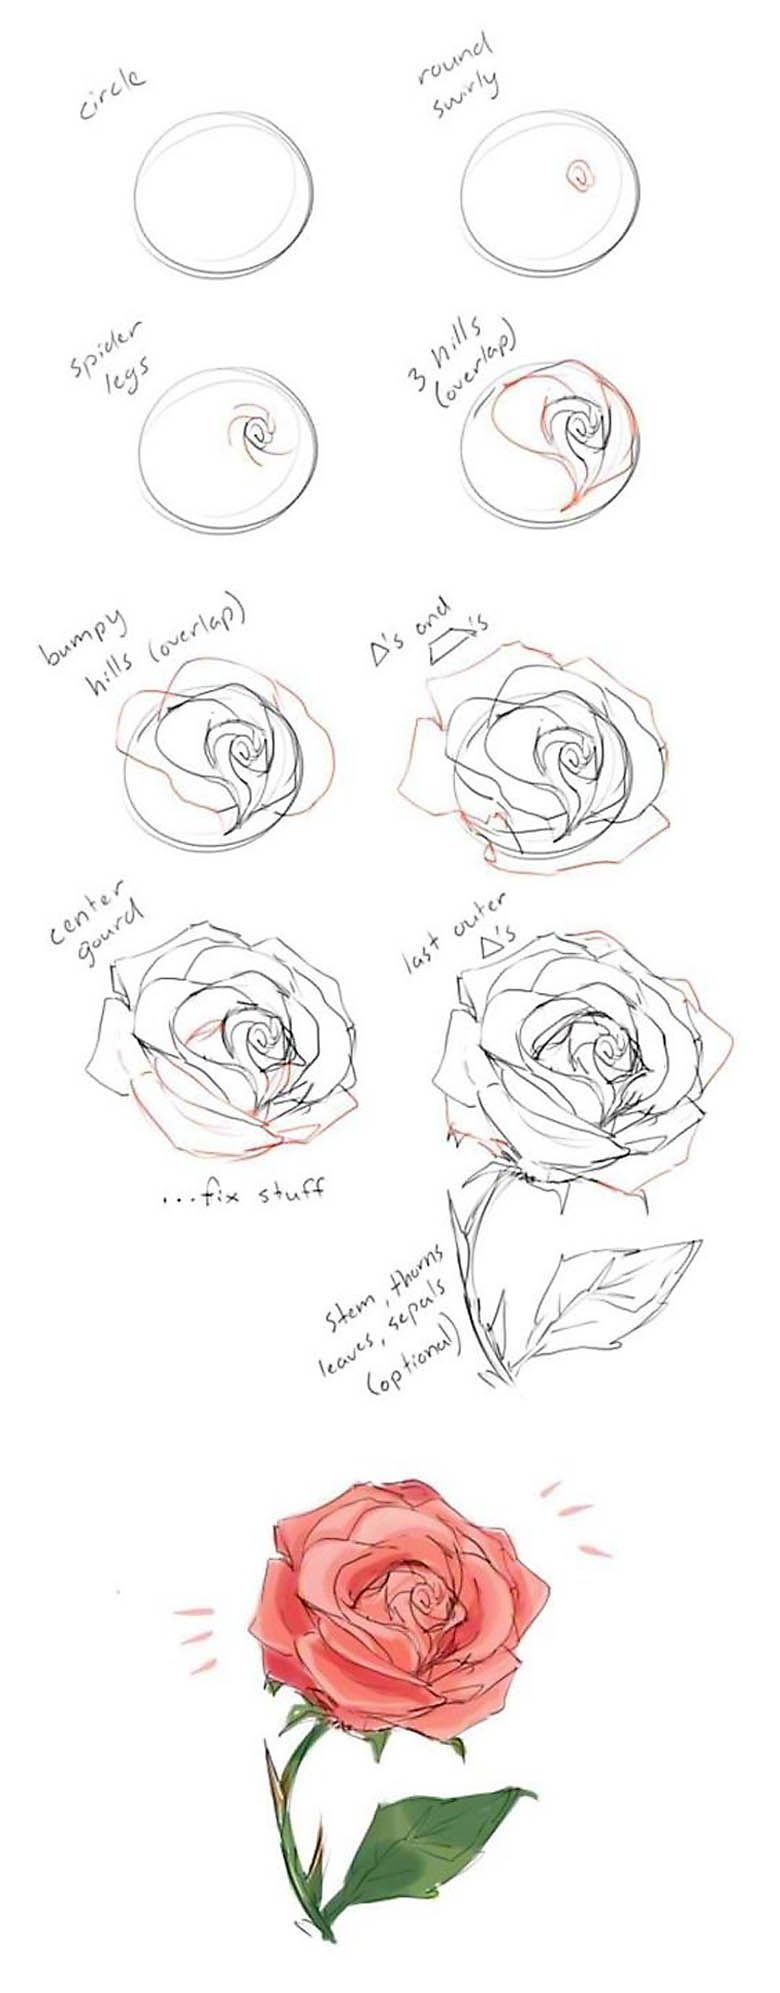 How To Draw A Rose Guide Drawing Flowers On Large Boards Or Walls Flower Line Diagram Simple Of Bud Stock Vector Can Be